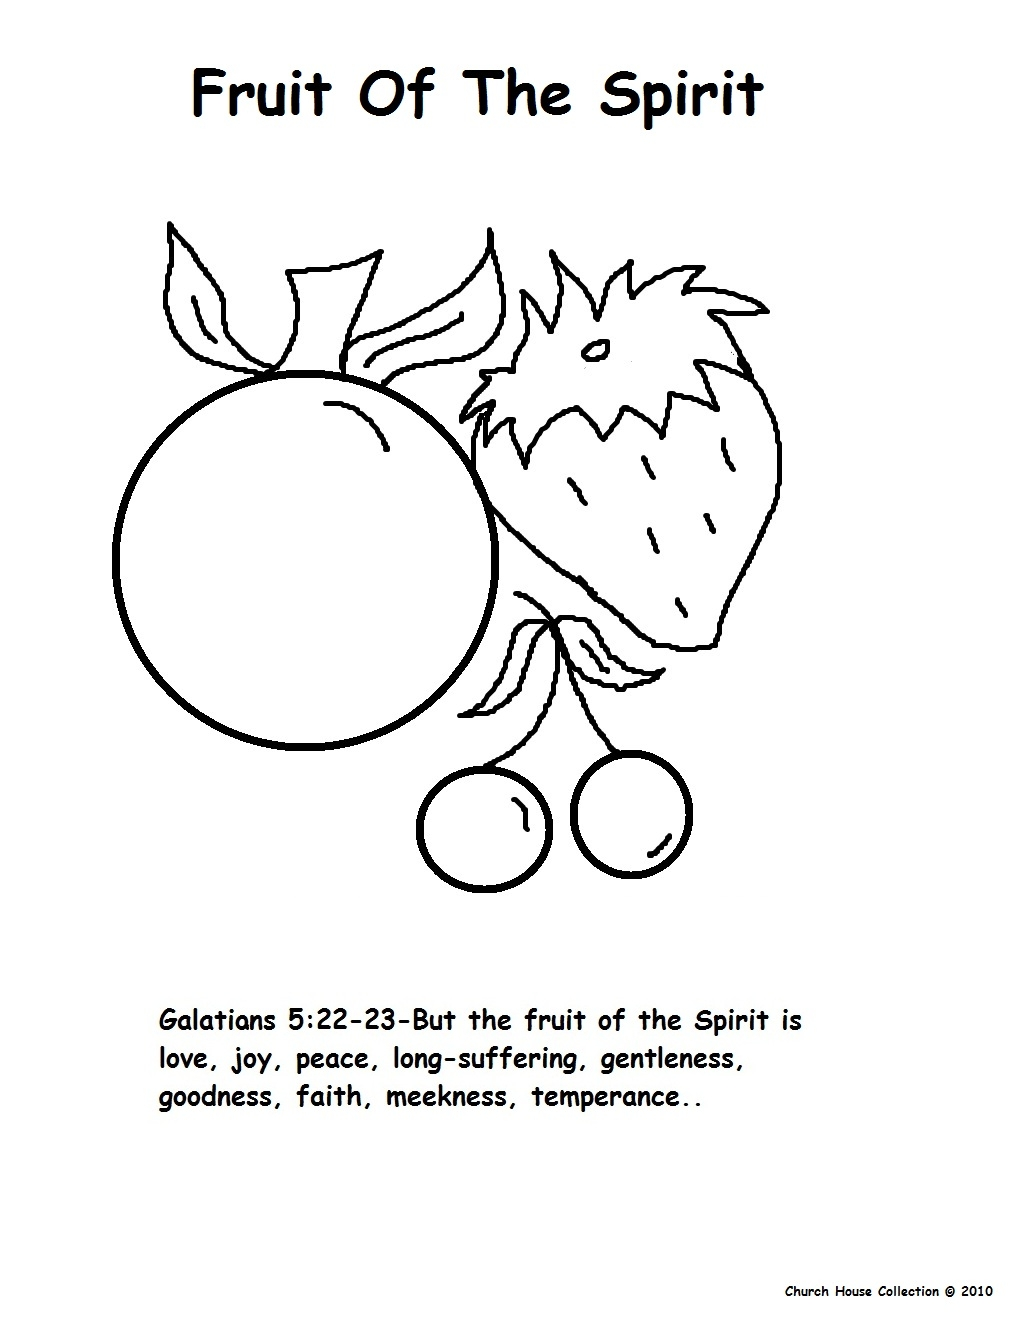 Fruit of the spirit coloring page fruit of the spirit coloring pages